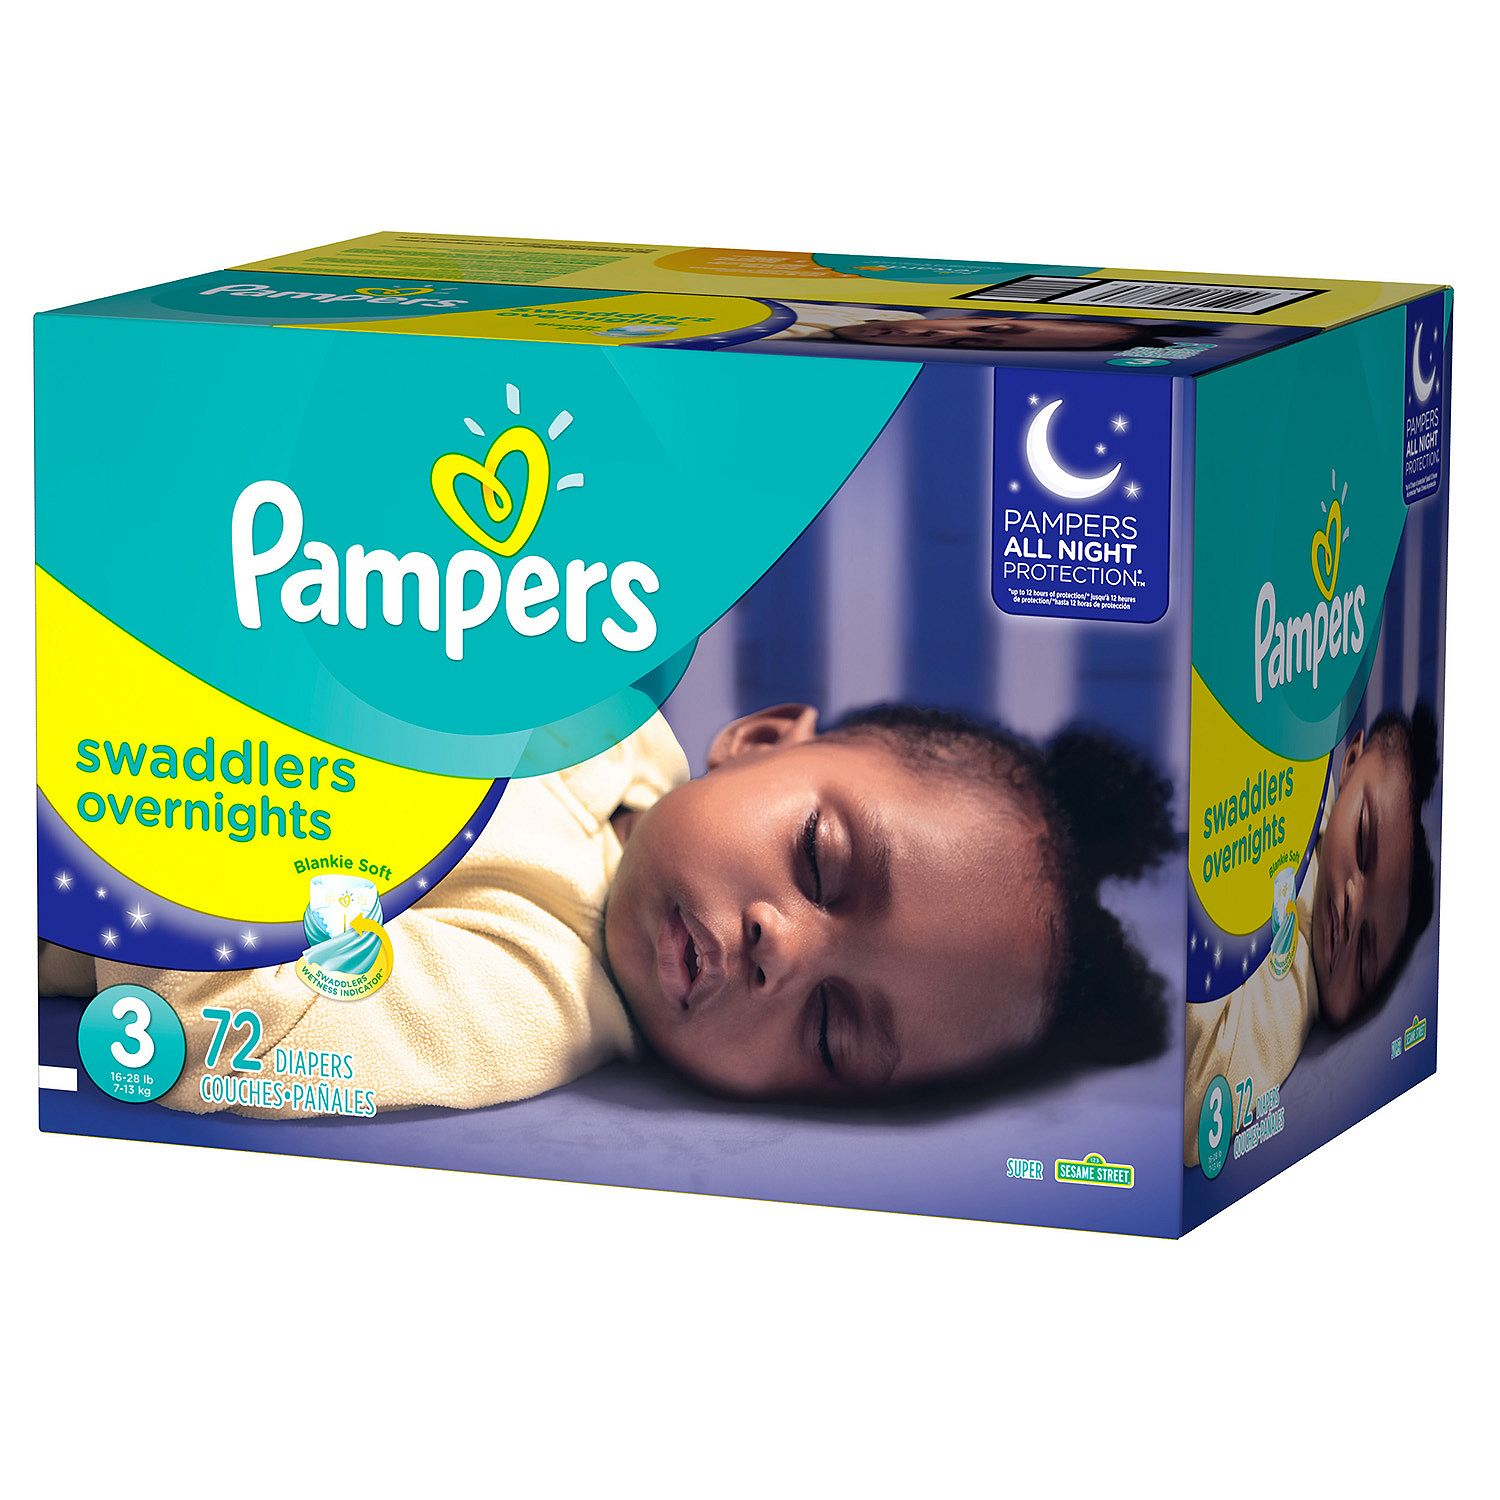 Pampers Swaddlers Overnights Diapers,72ct Size,3